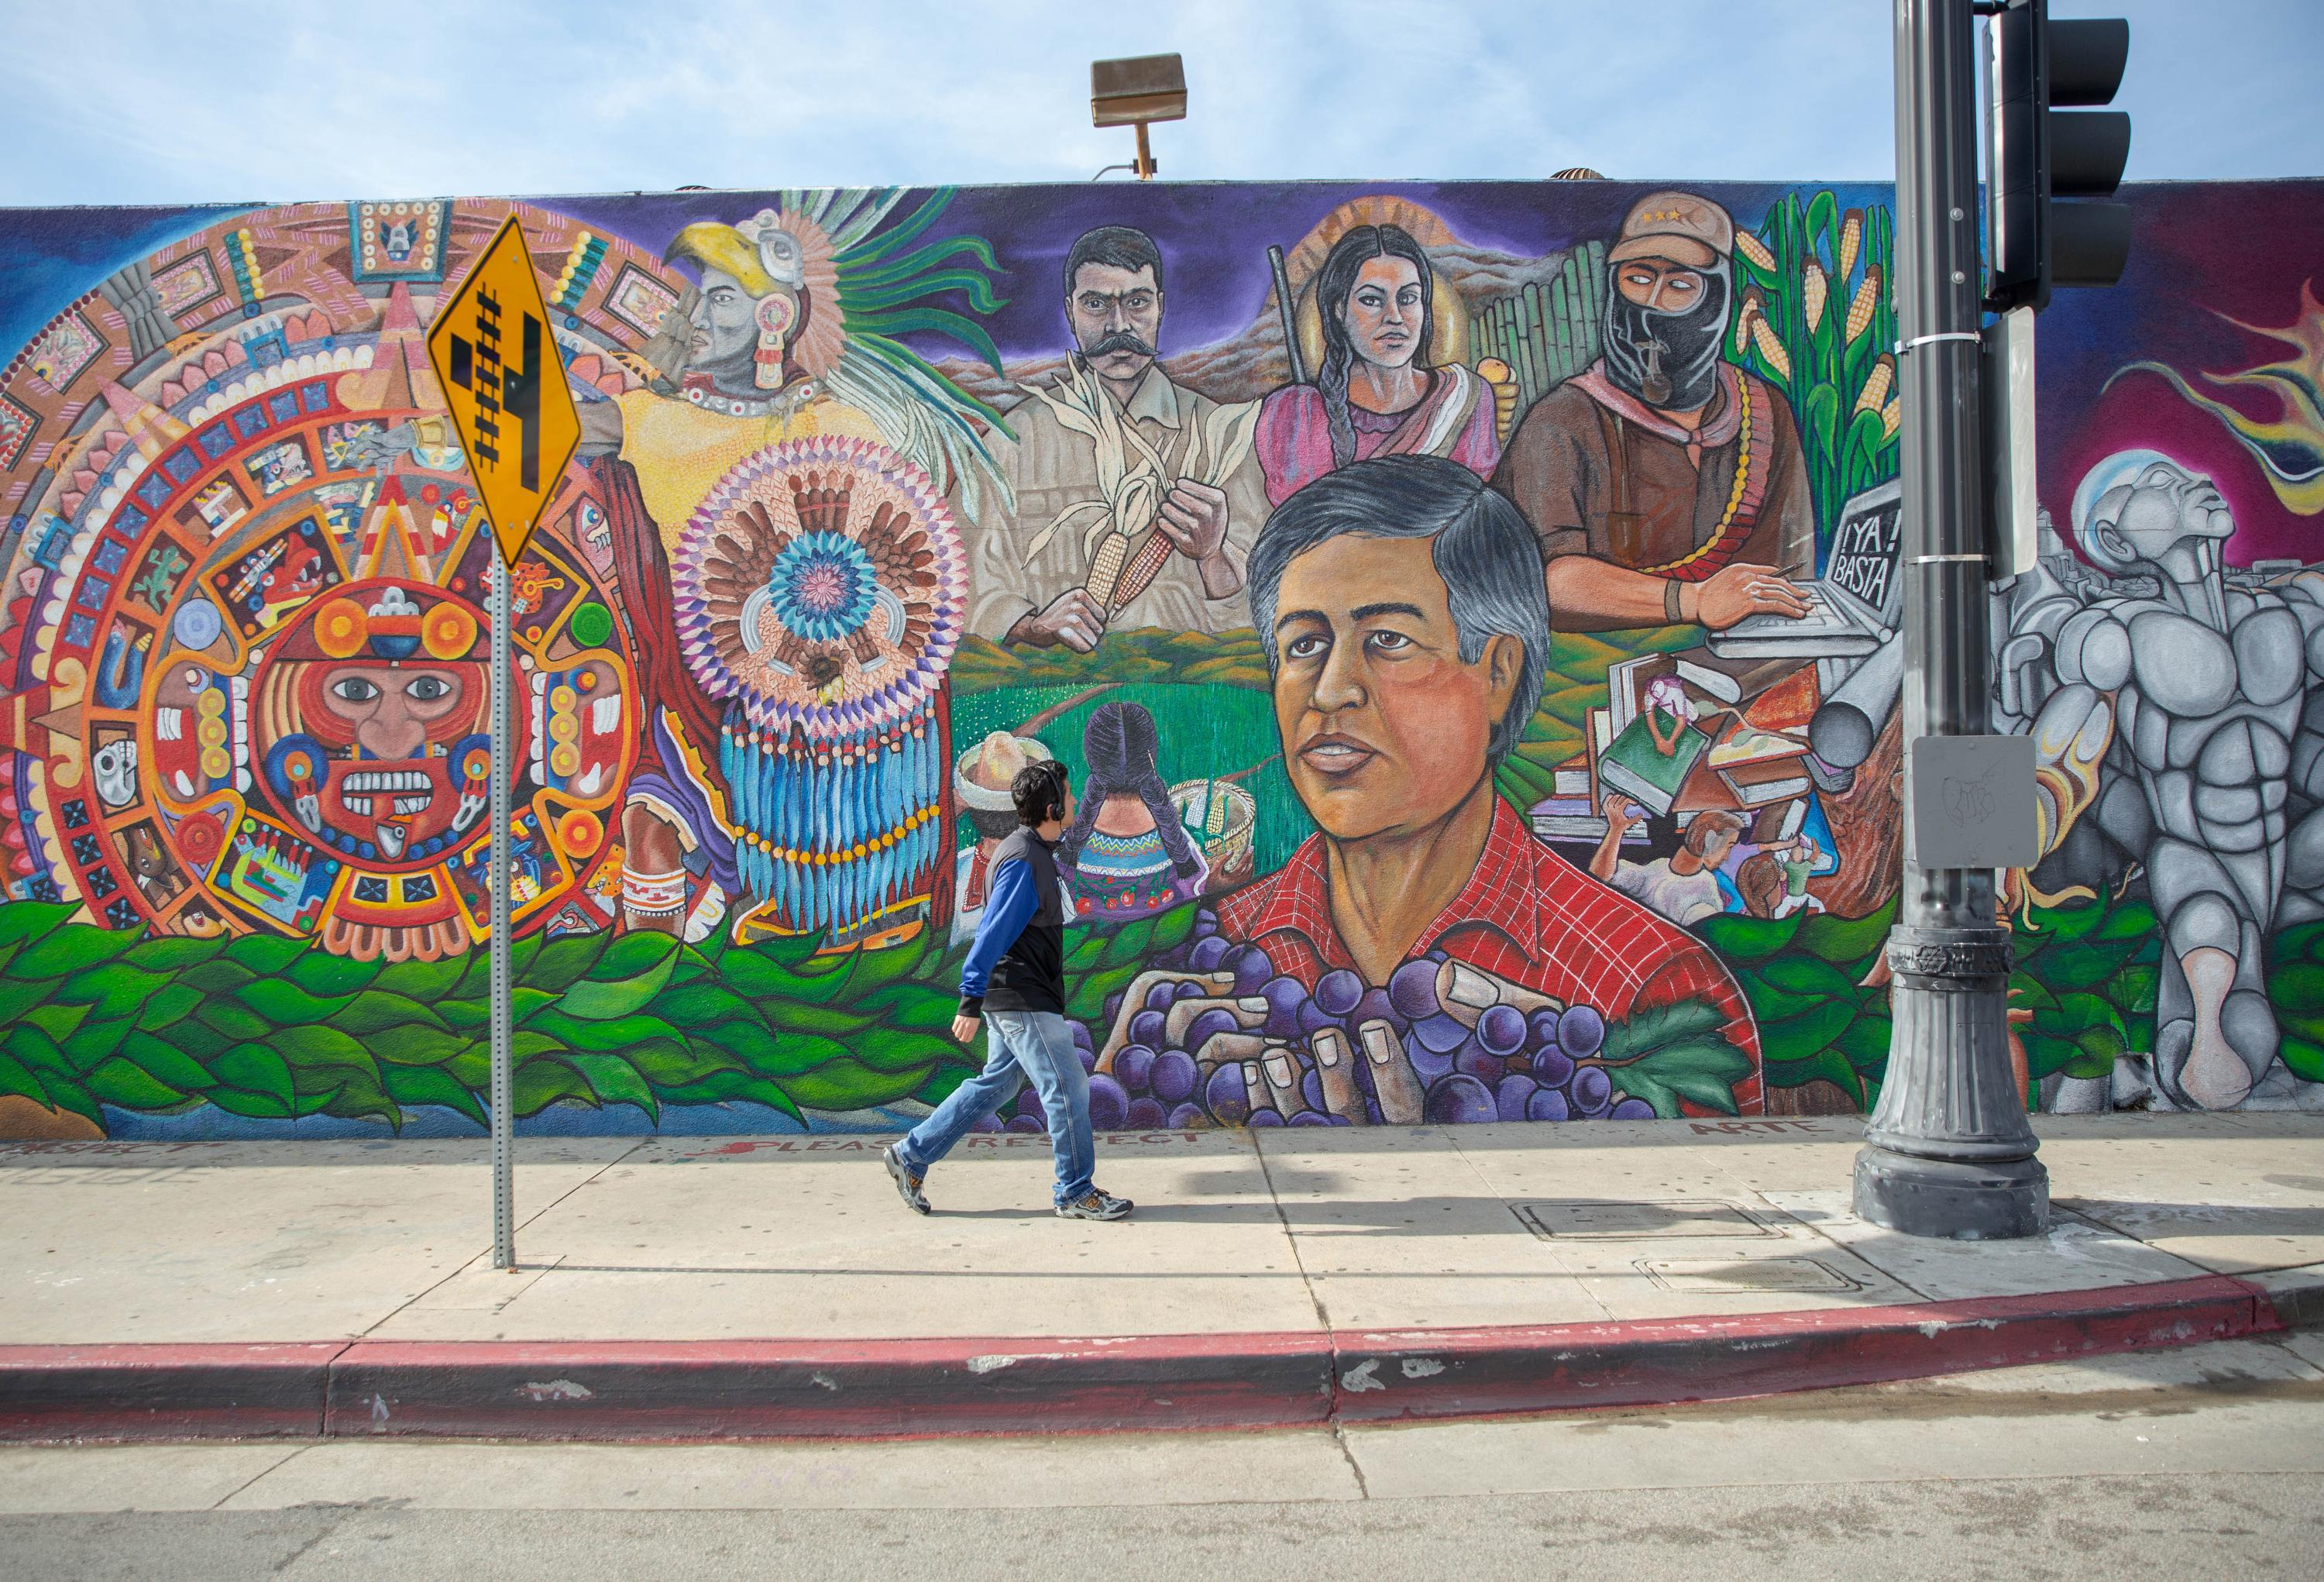 'Whitewashed': how gentrification continues to erase LA's bold murals